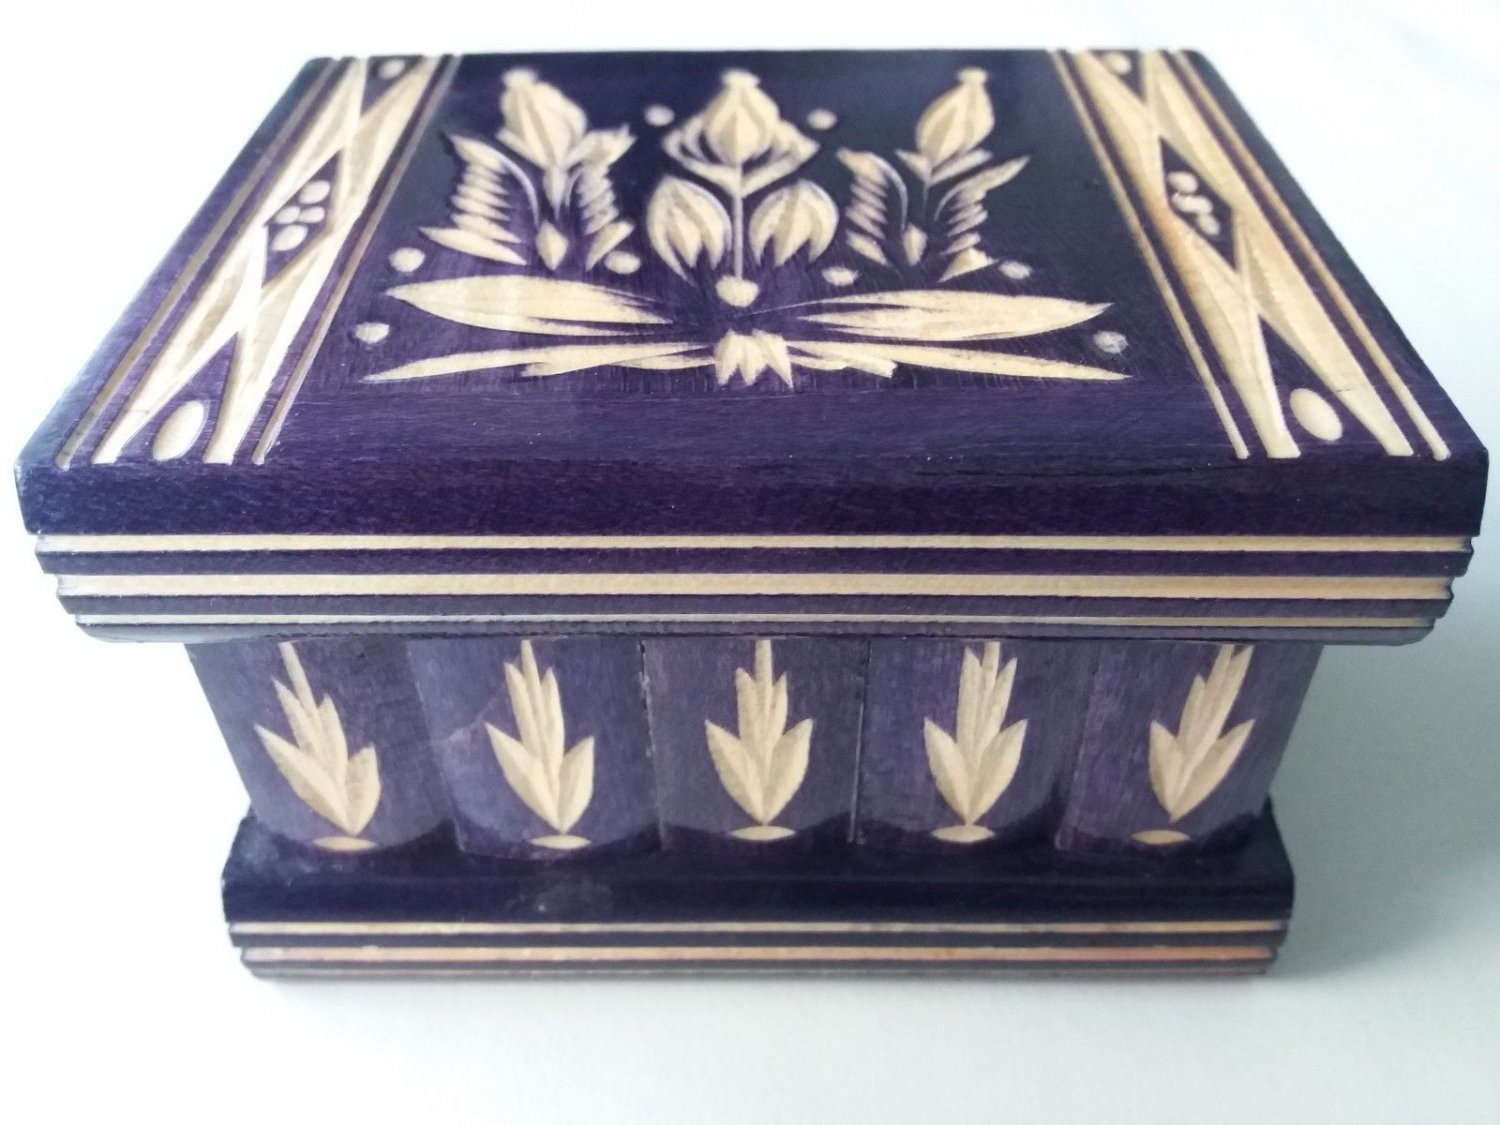 New violet handcarved wooden puzzle magic storage jewelry secret trinket box